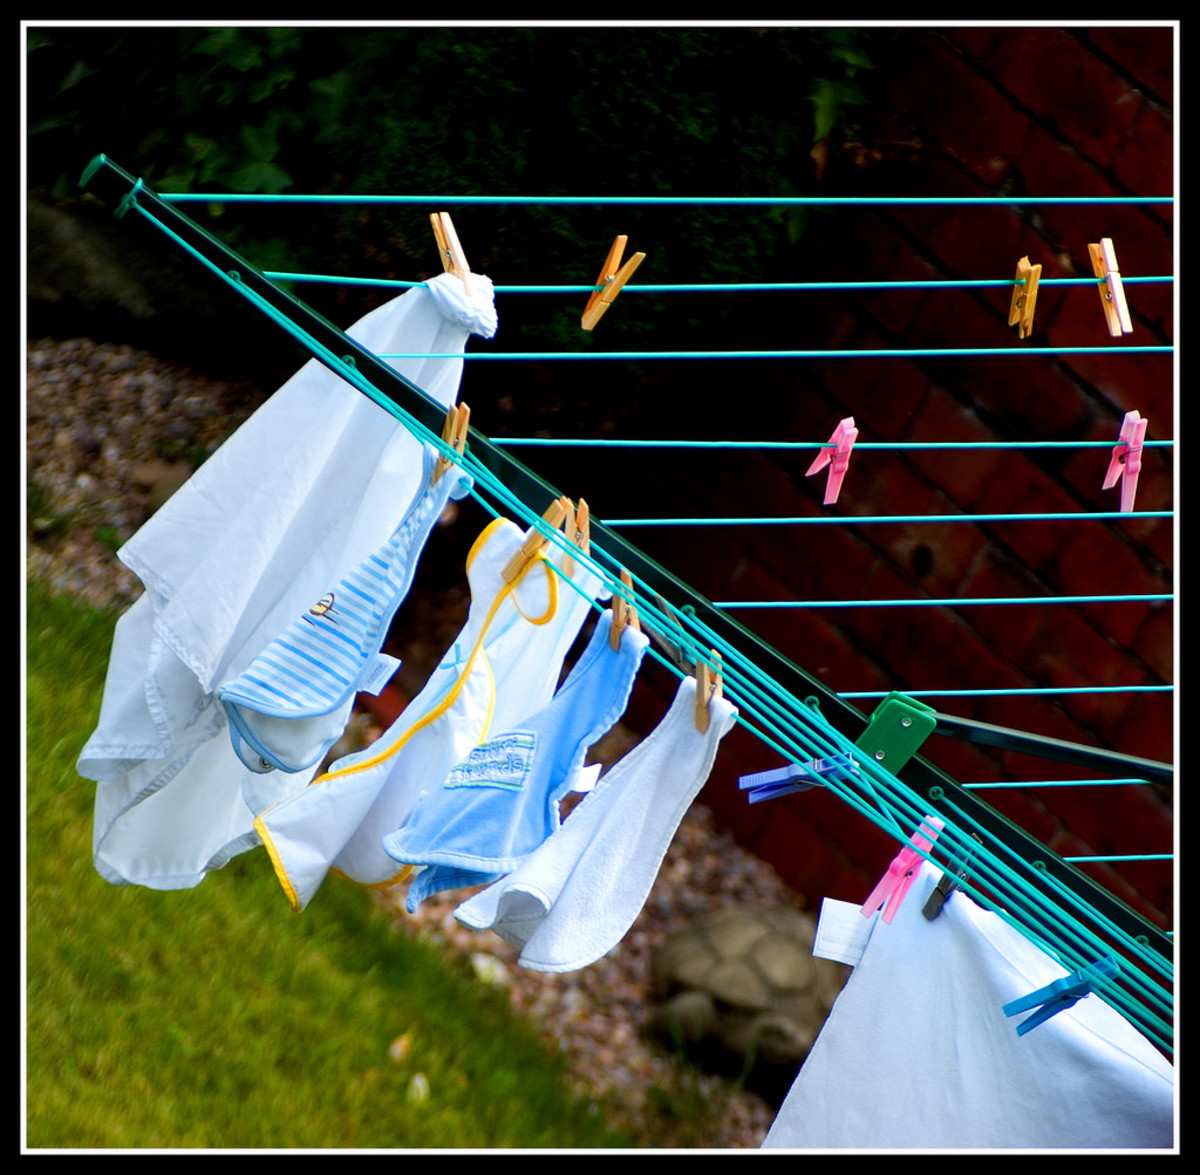 Clothes on the line.